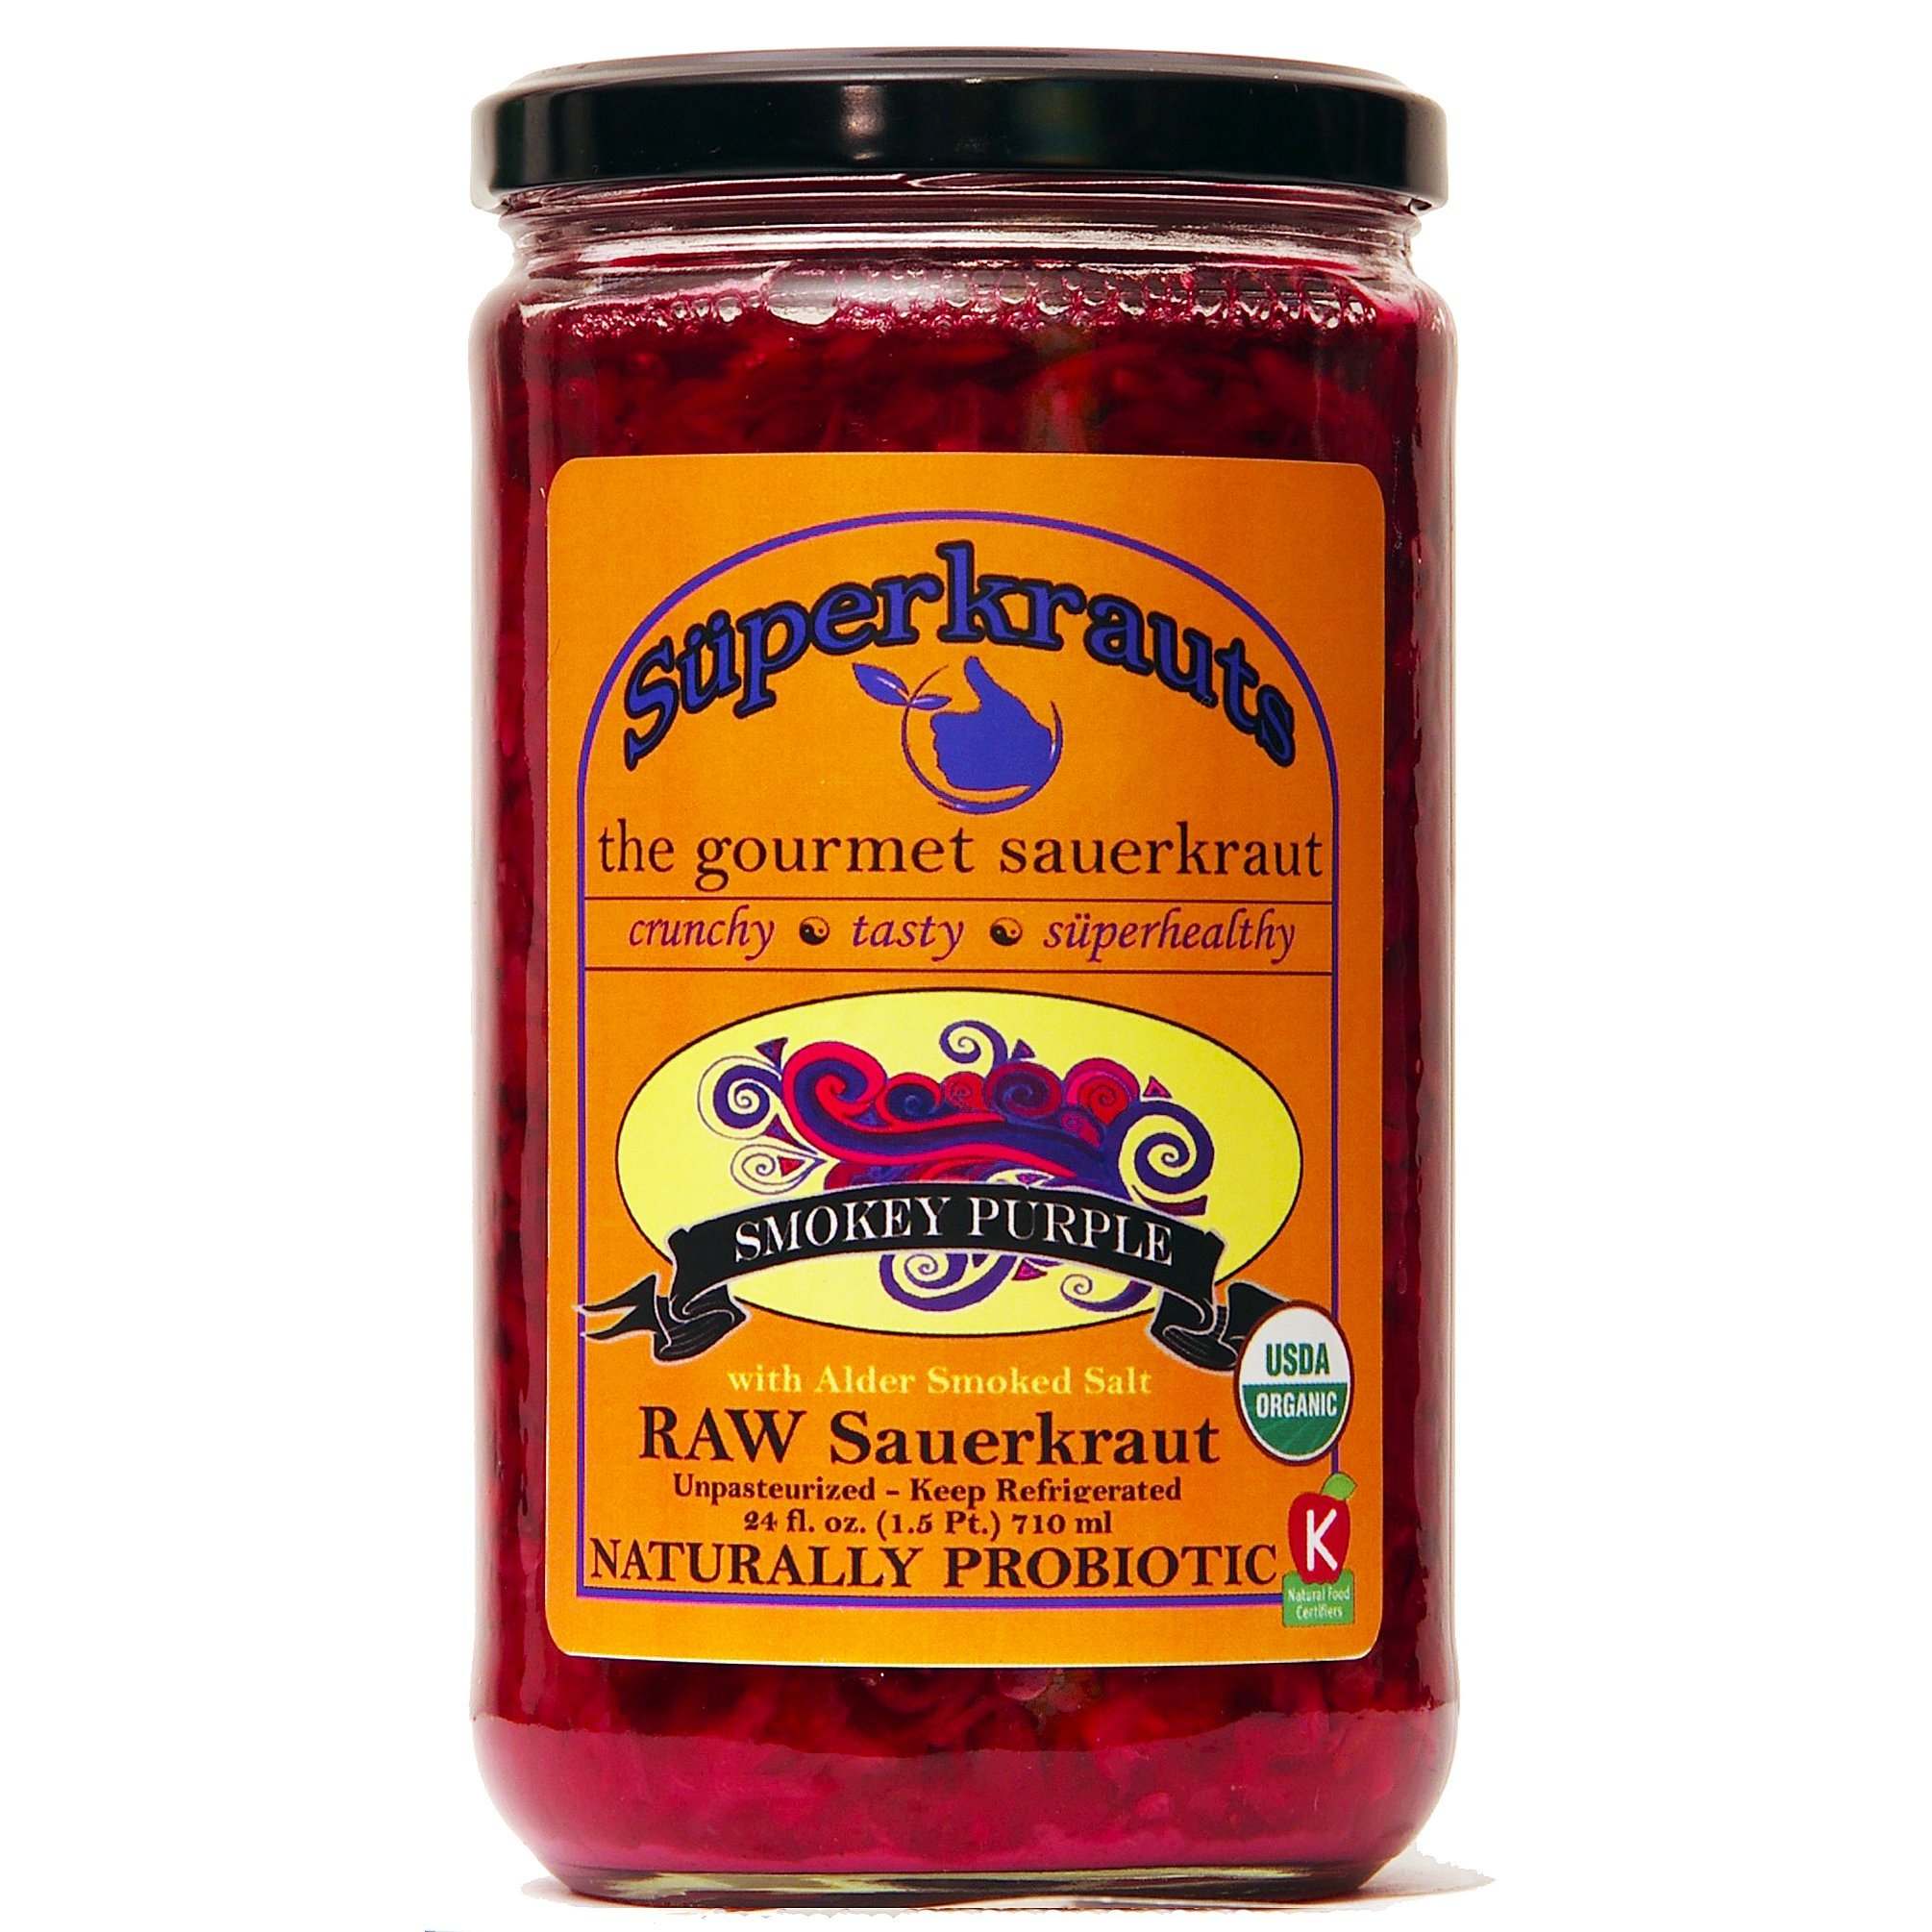 """Smokey Purple"" gourmet sauerkraut: organic, raw fermented, unpasteurized, probiotic, kosher, vegan and gluten free. 24 fl. oz, 16 flavors available. No shipping charges with minimum. by Superkrauts"